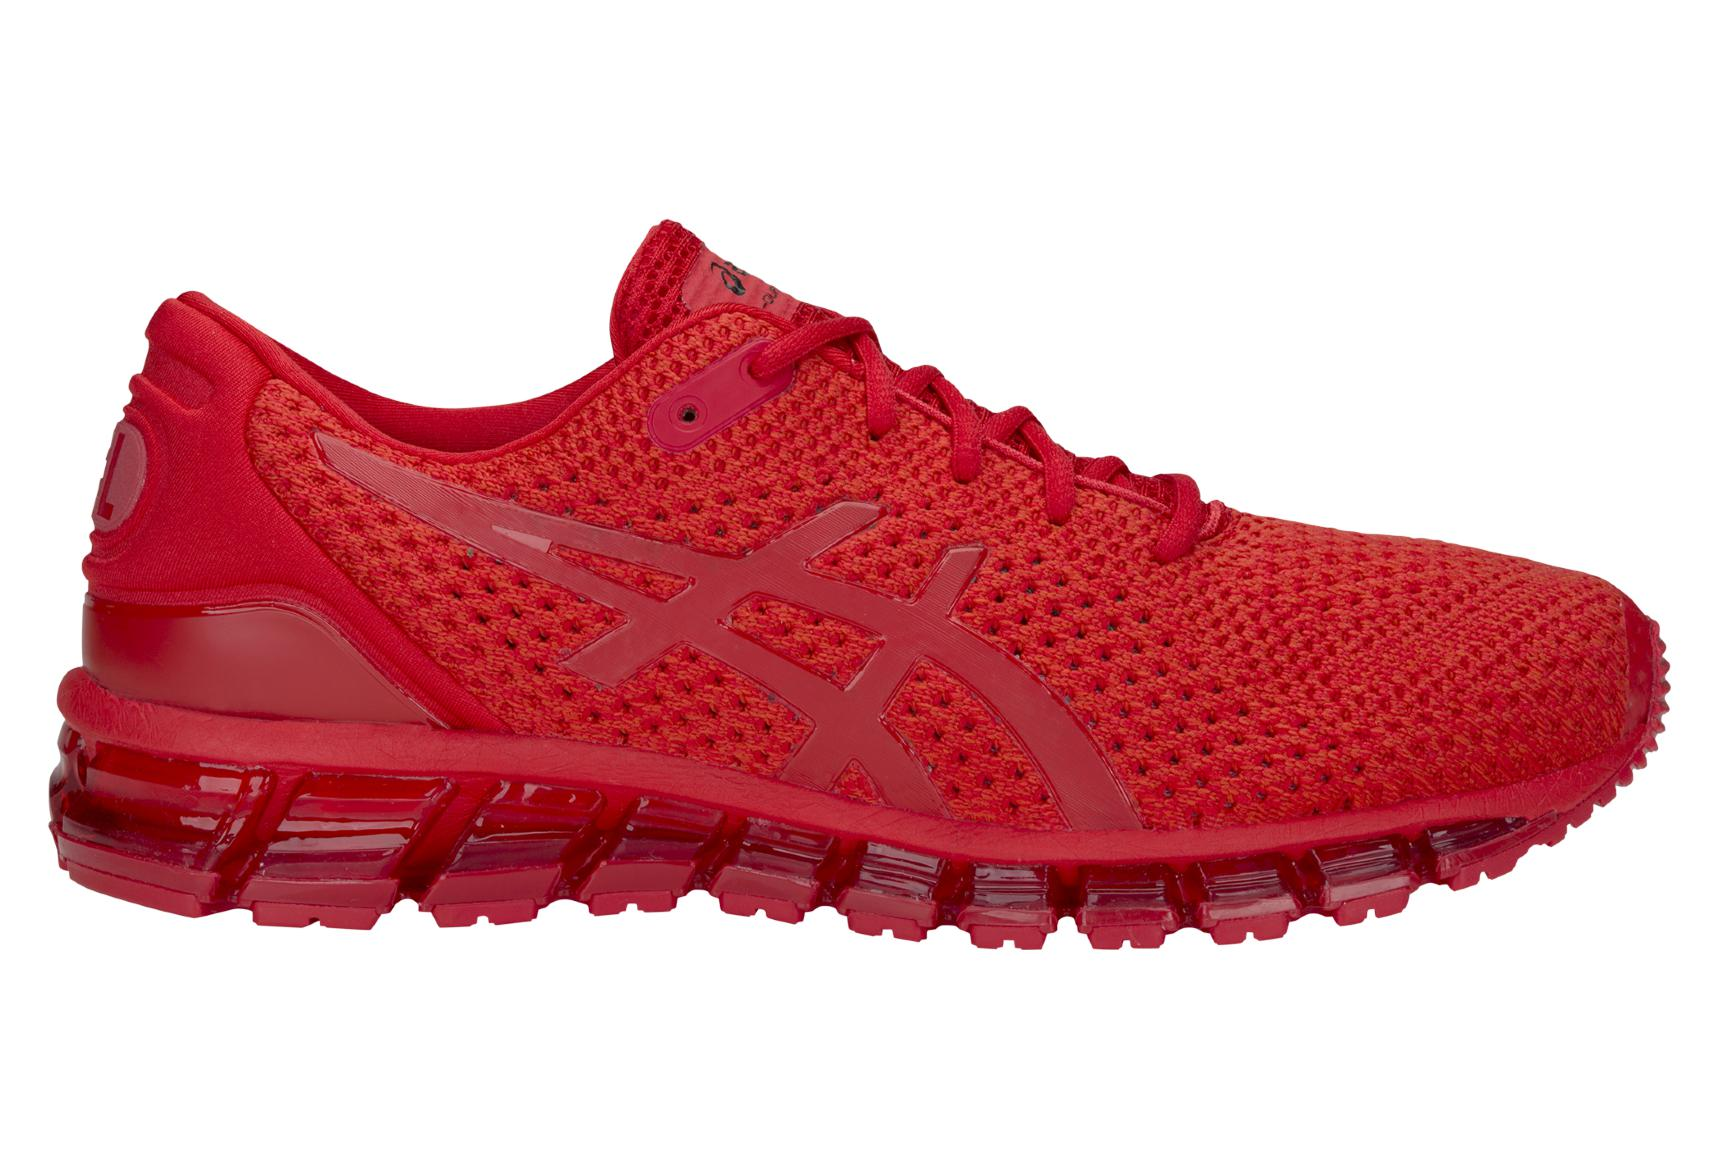 quality design 21482 abb1d Asics Shoes Run Gel Quantum 360 Knit 2 Red Men